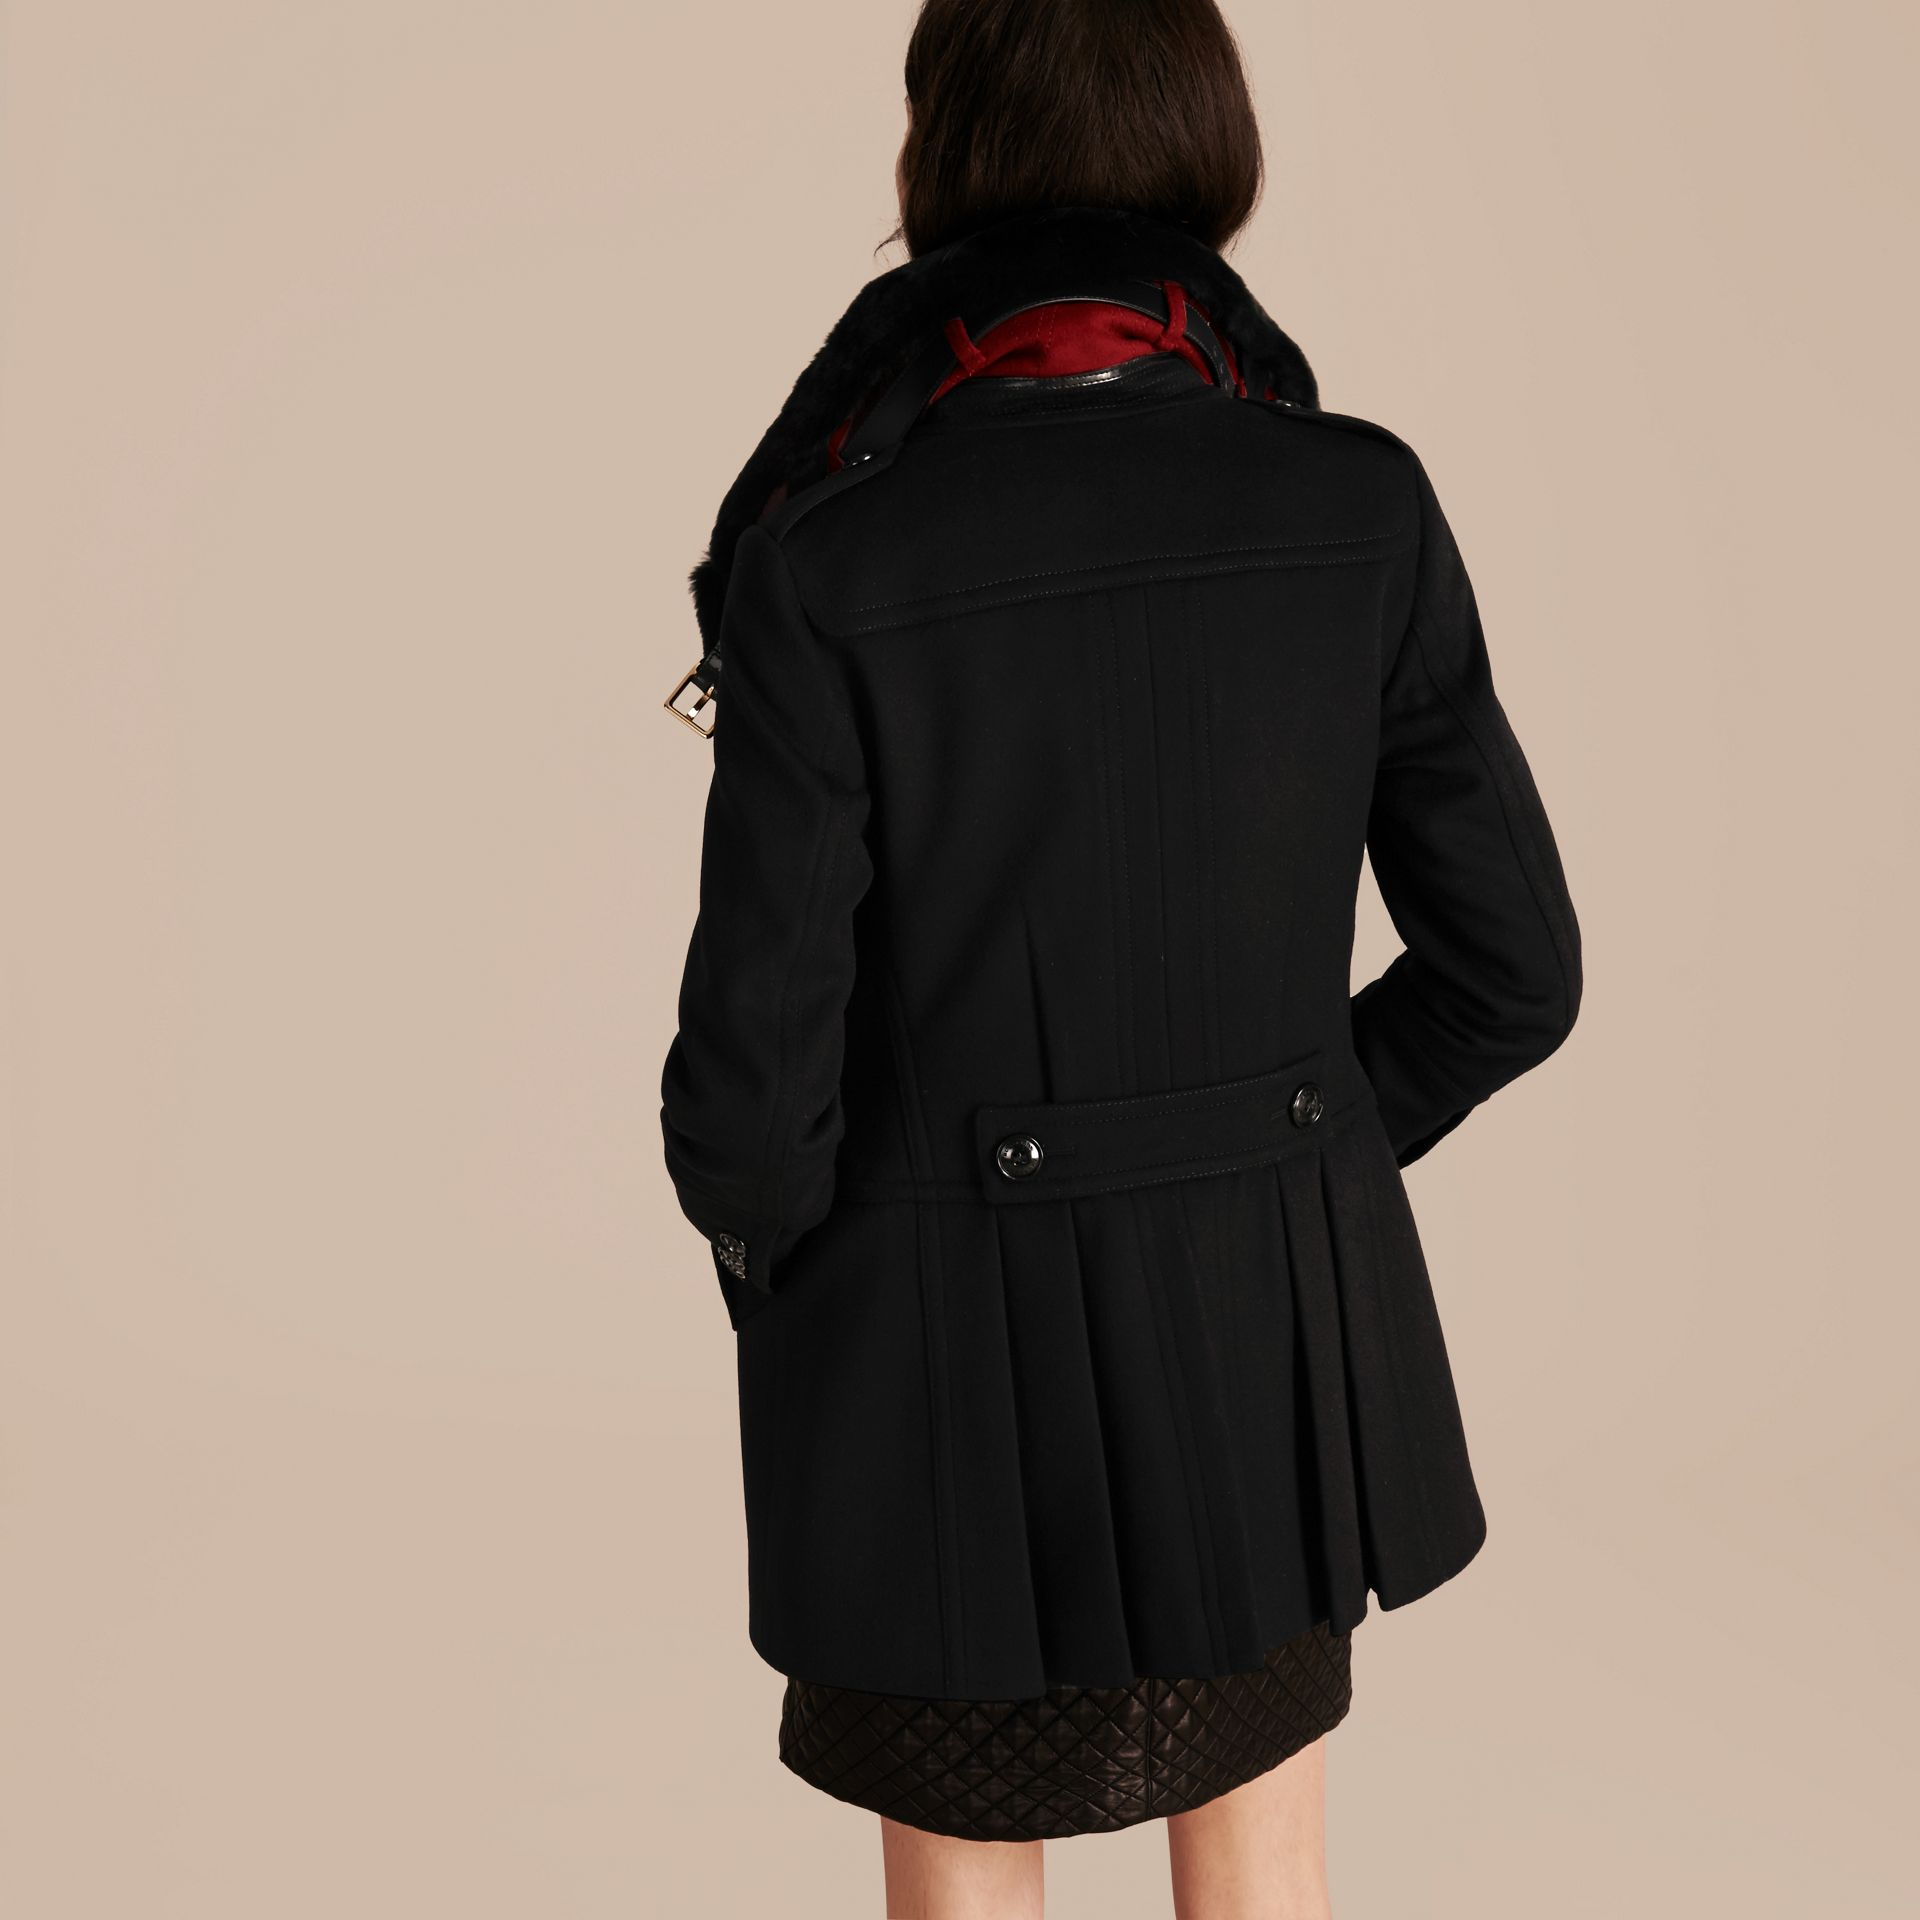 Black Wool Cashmere Pea Coat with Detachable Fur Collar - gallery image 3